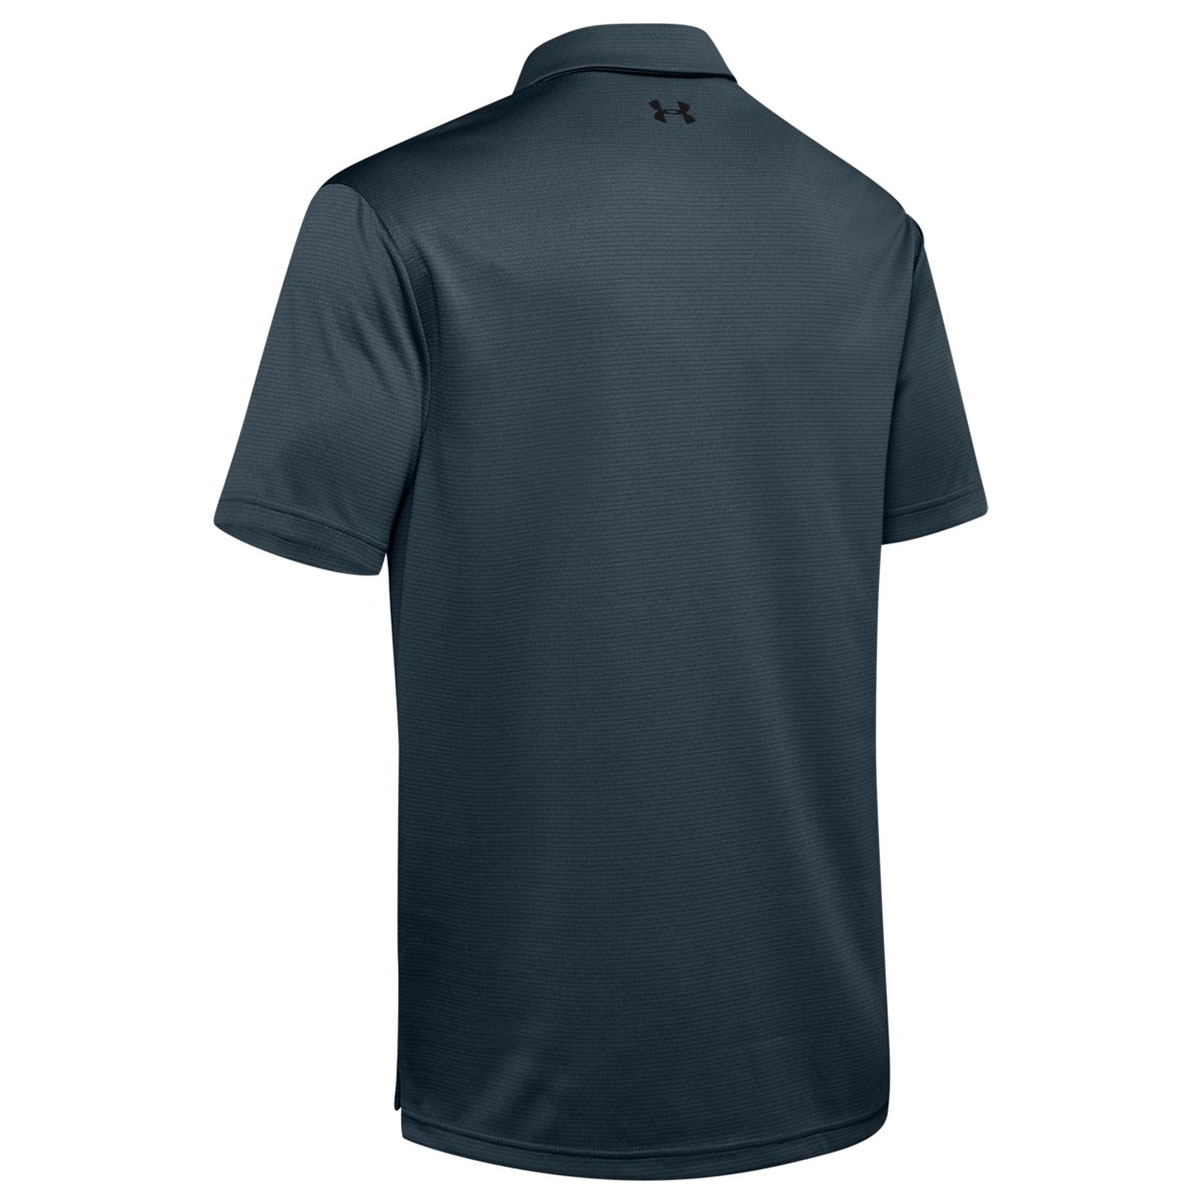 Under-Armour-Mens-Golf-Tech-Wicking-Textured-Soft-Light-Polo-Shirt thumbnail 95